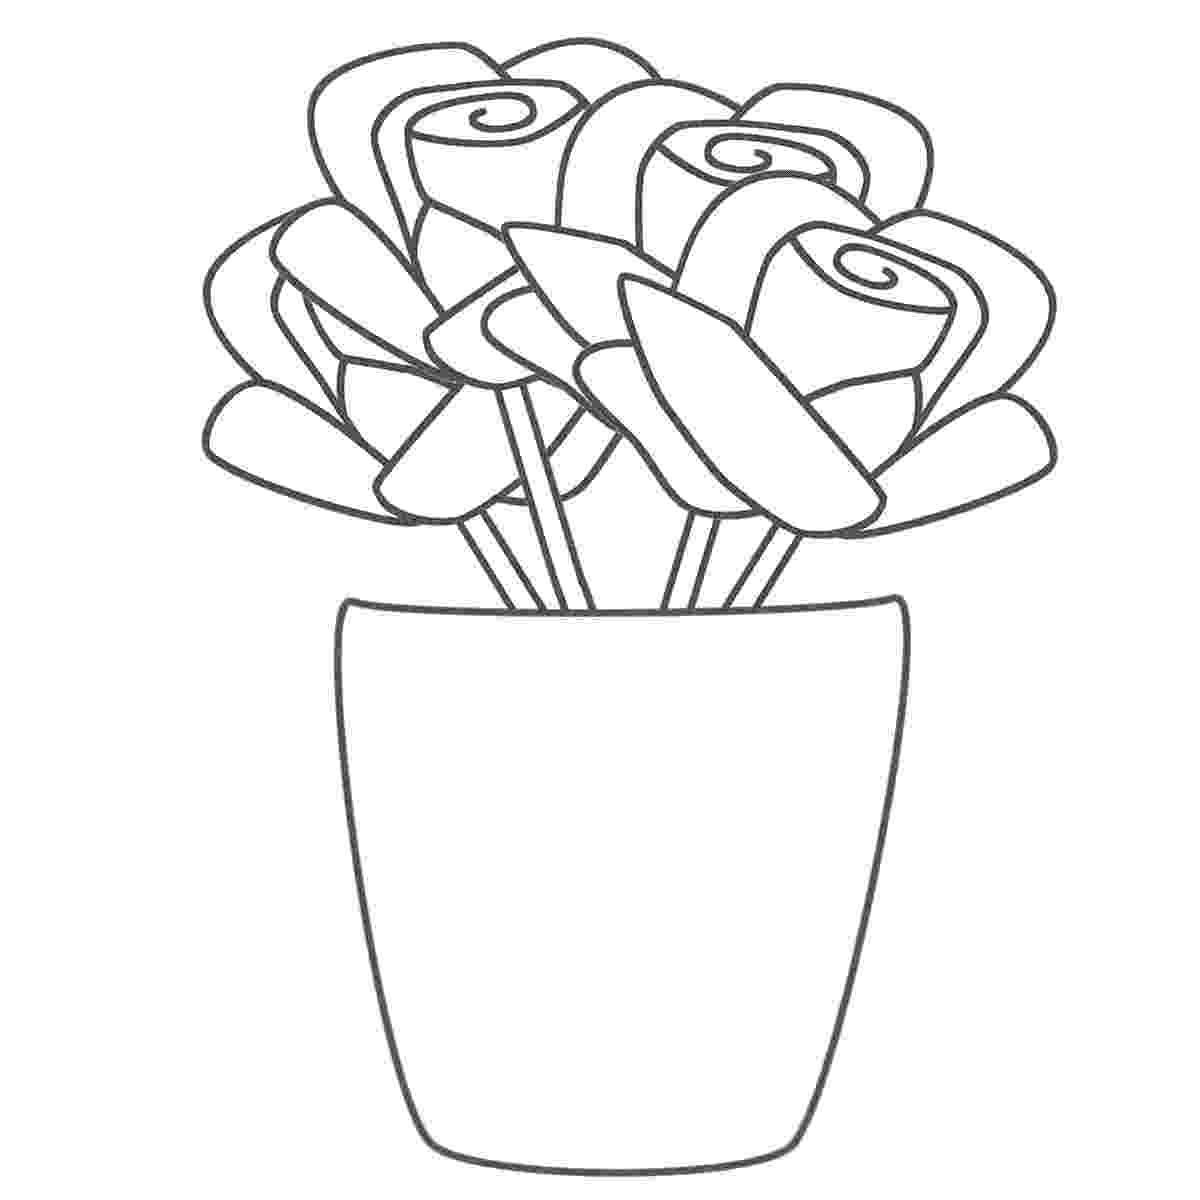 roses for coloring printable rose coloring pages for kids cool2bkids coloring for roses